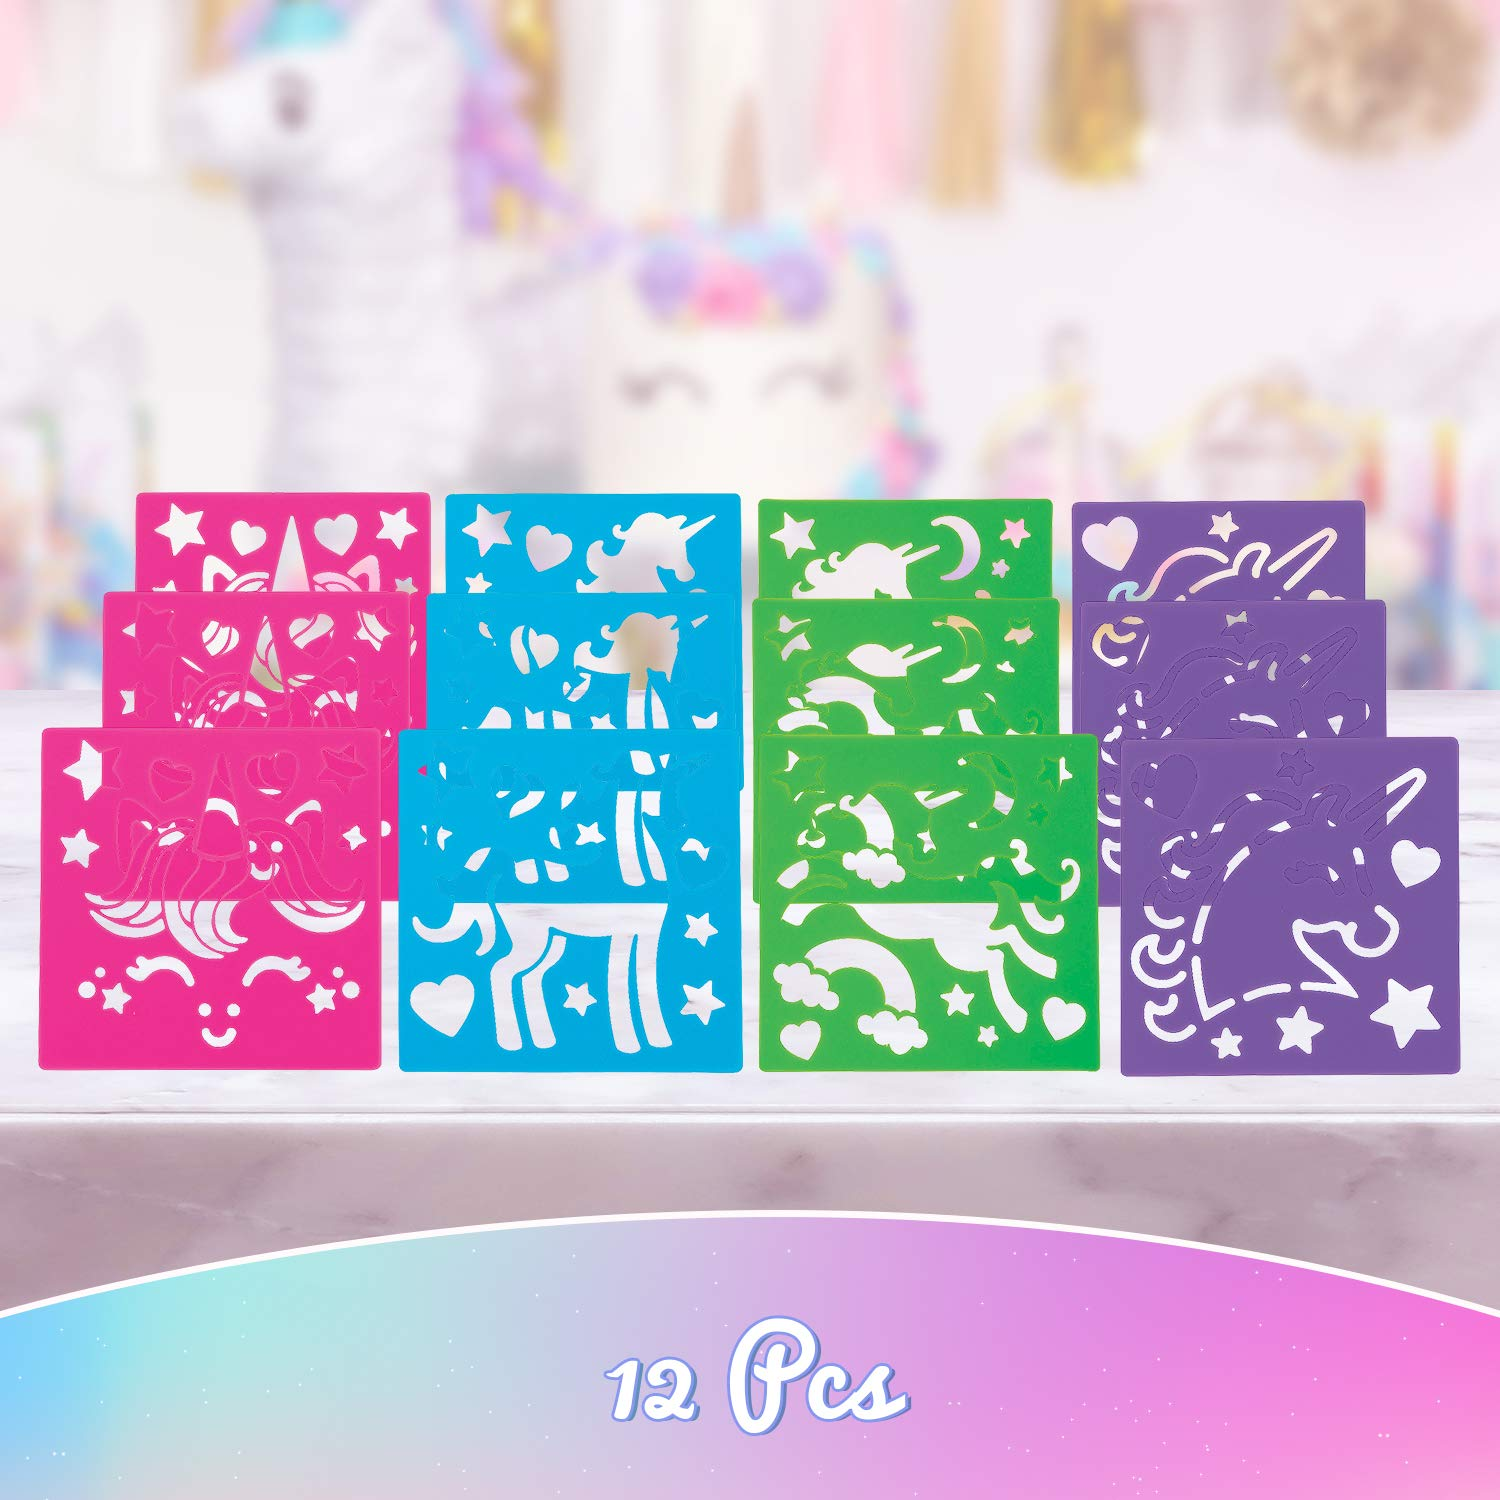 Birthday Favors Gift Fun Express Unicorn Stencils Giveaway Prizes School Supply Great for Unicorn Themed Celebration